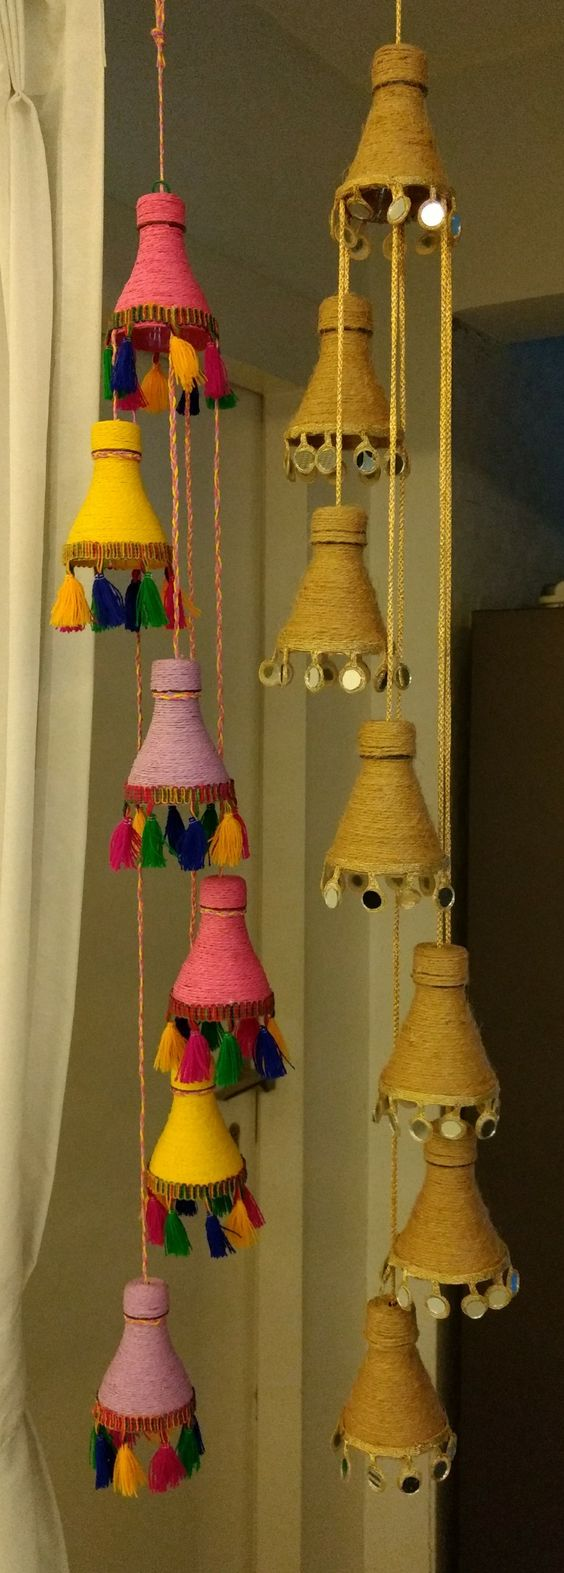 Colourful Door Hangings Idea